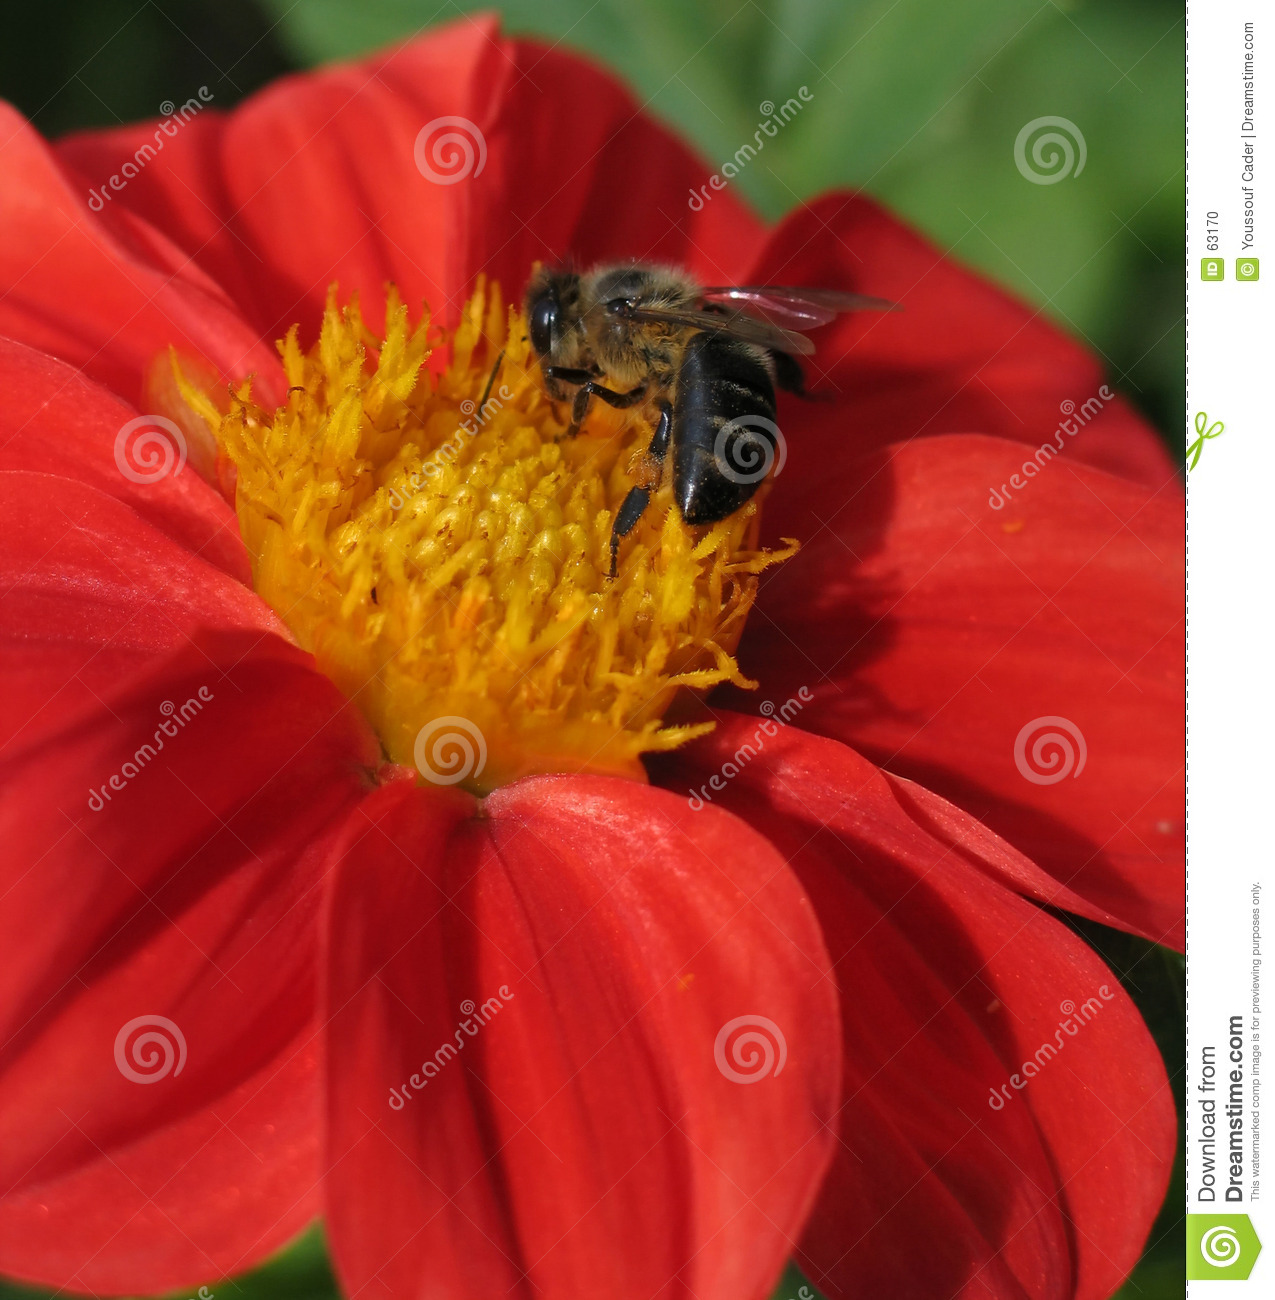 Download Activité d'abeille photo stock. Image du insecte, centre - 63170